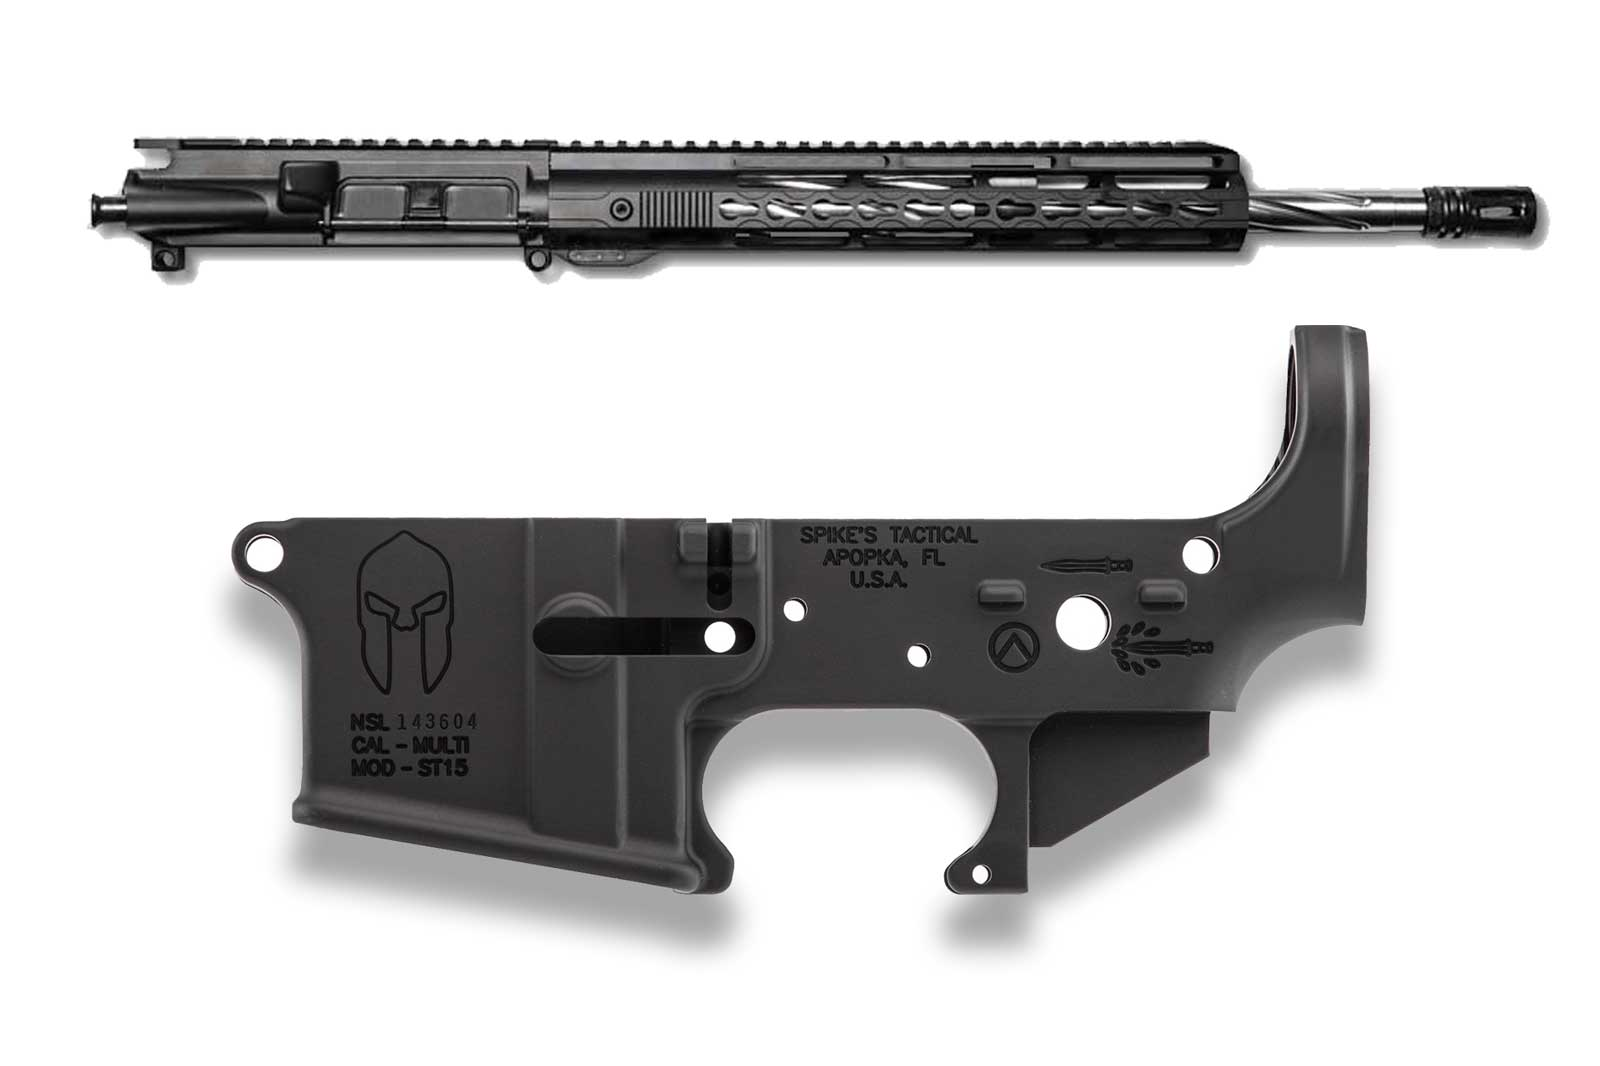 ar15-upper-assembly-with-spikes-tactical-lower-16-223-wylde-spiral-flute-spartan-160373